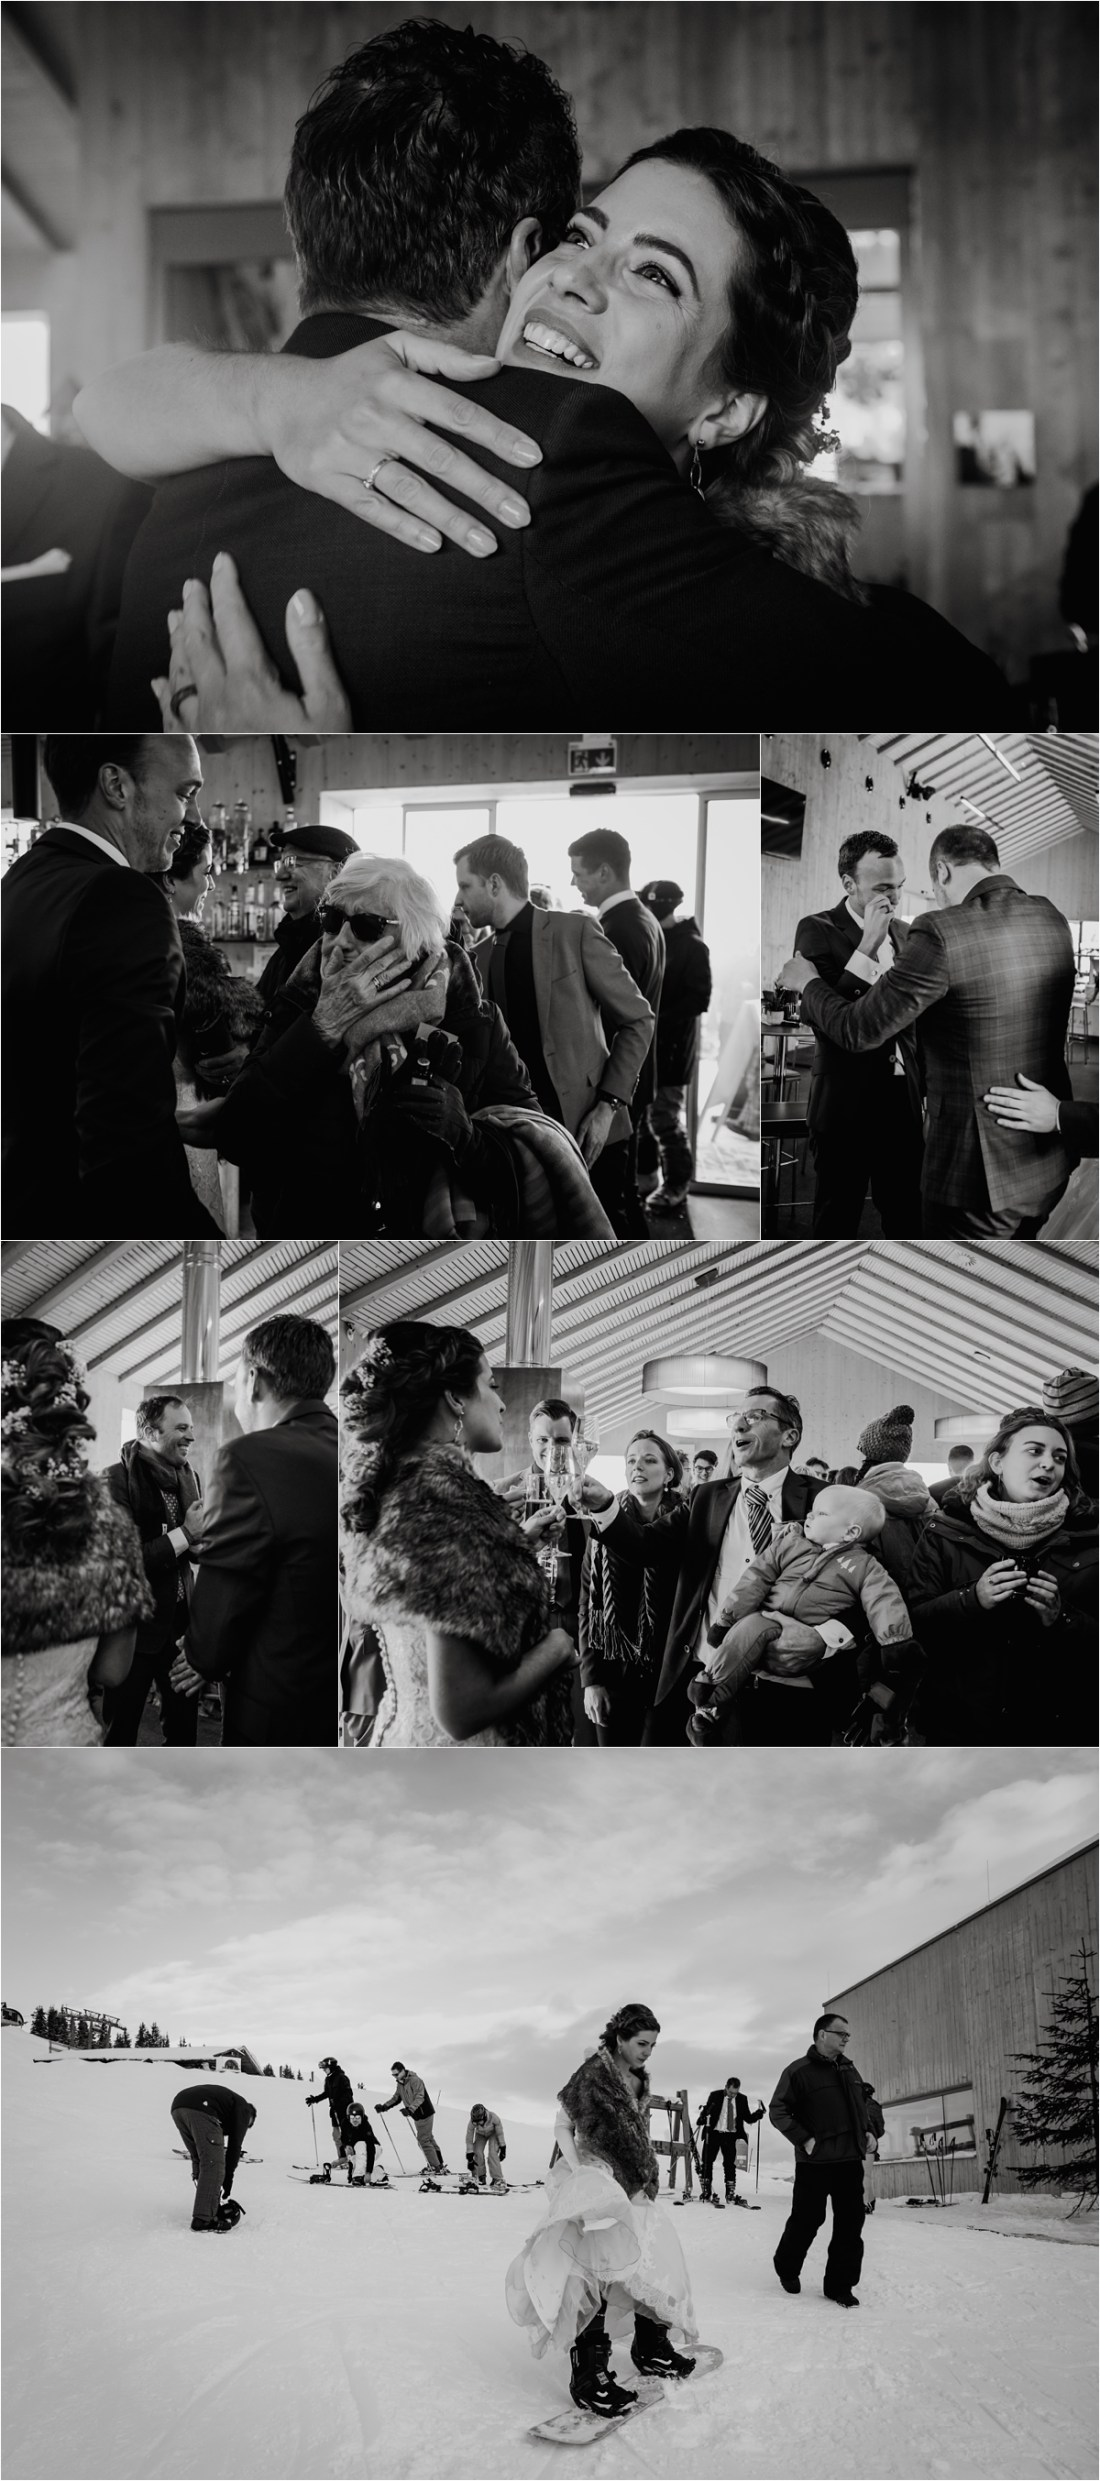 Guests congratulate the bride and groom after their wedding ceremony at the Schmiedhof Alm in Zell am See by Wild Connections Photography